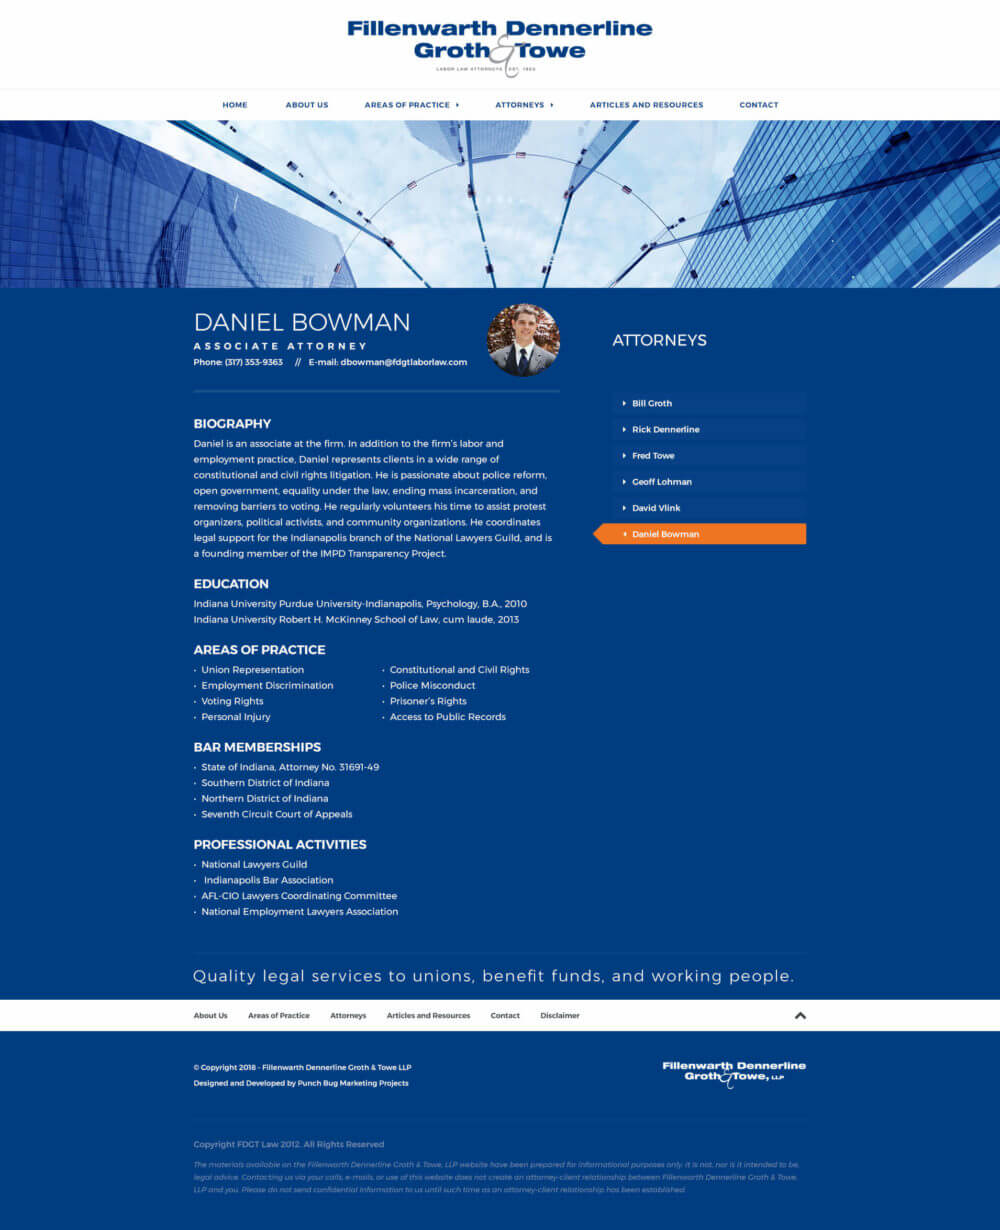 Fillenwarth Dennerline Groth & Towe Website - Daniel Bowman